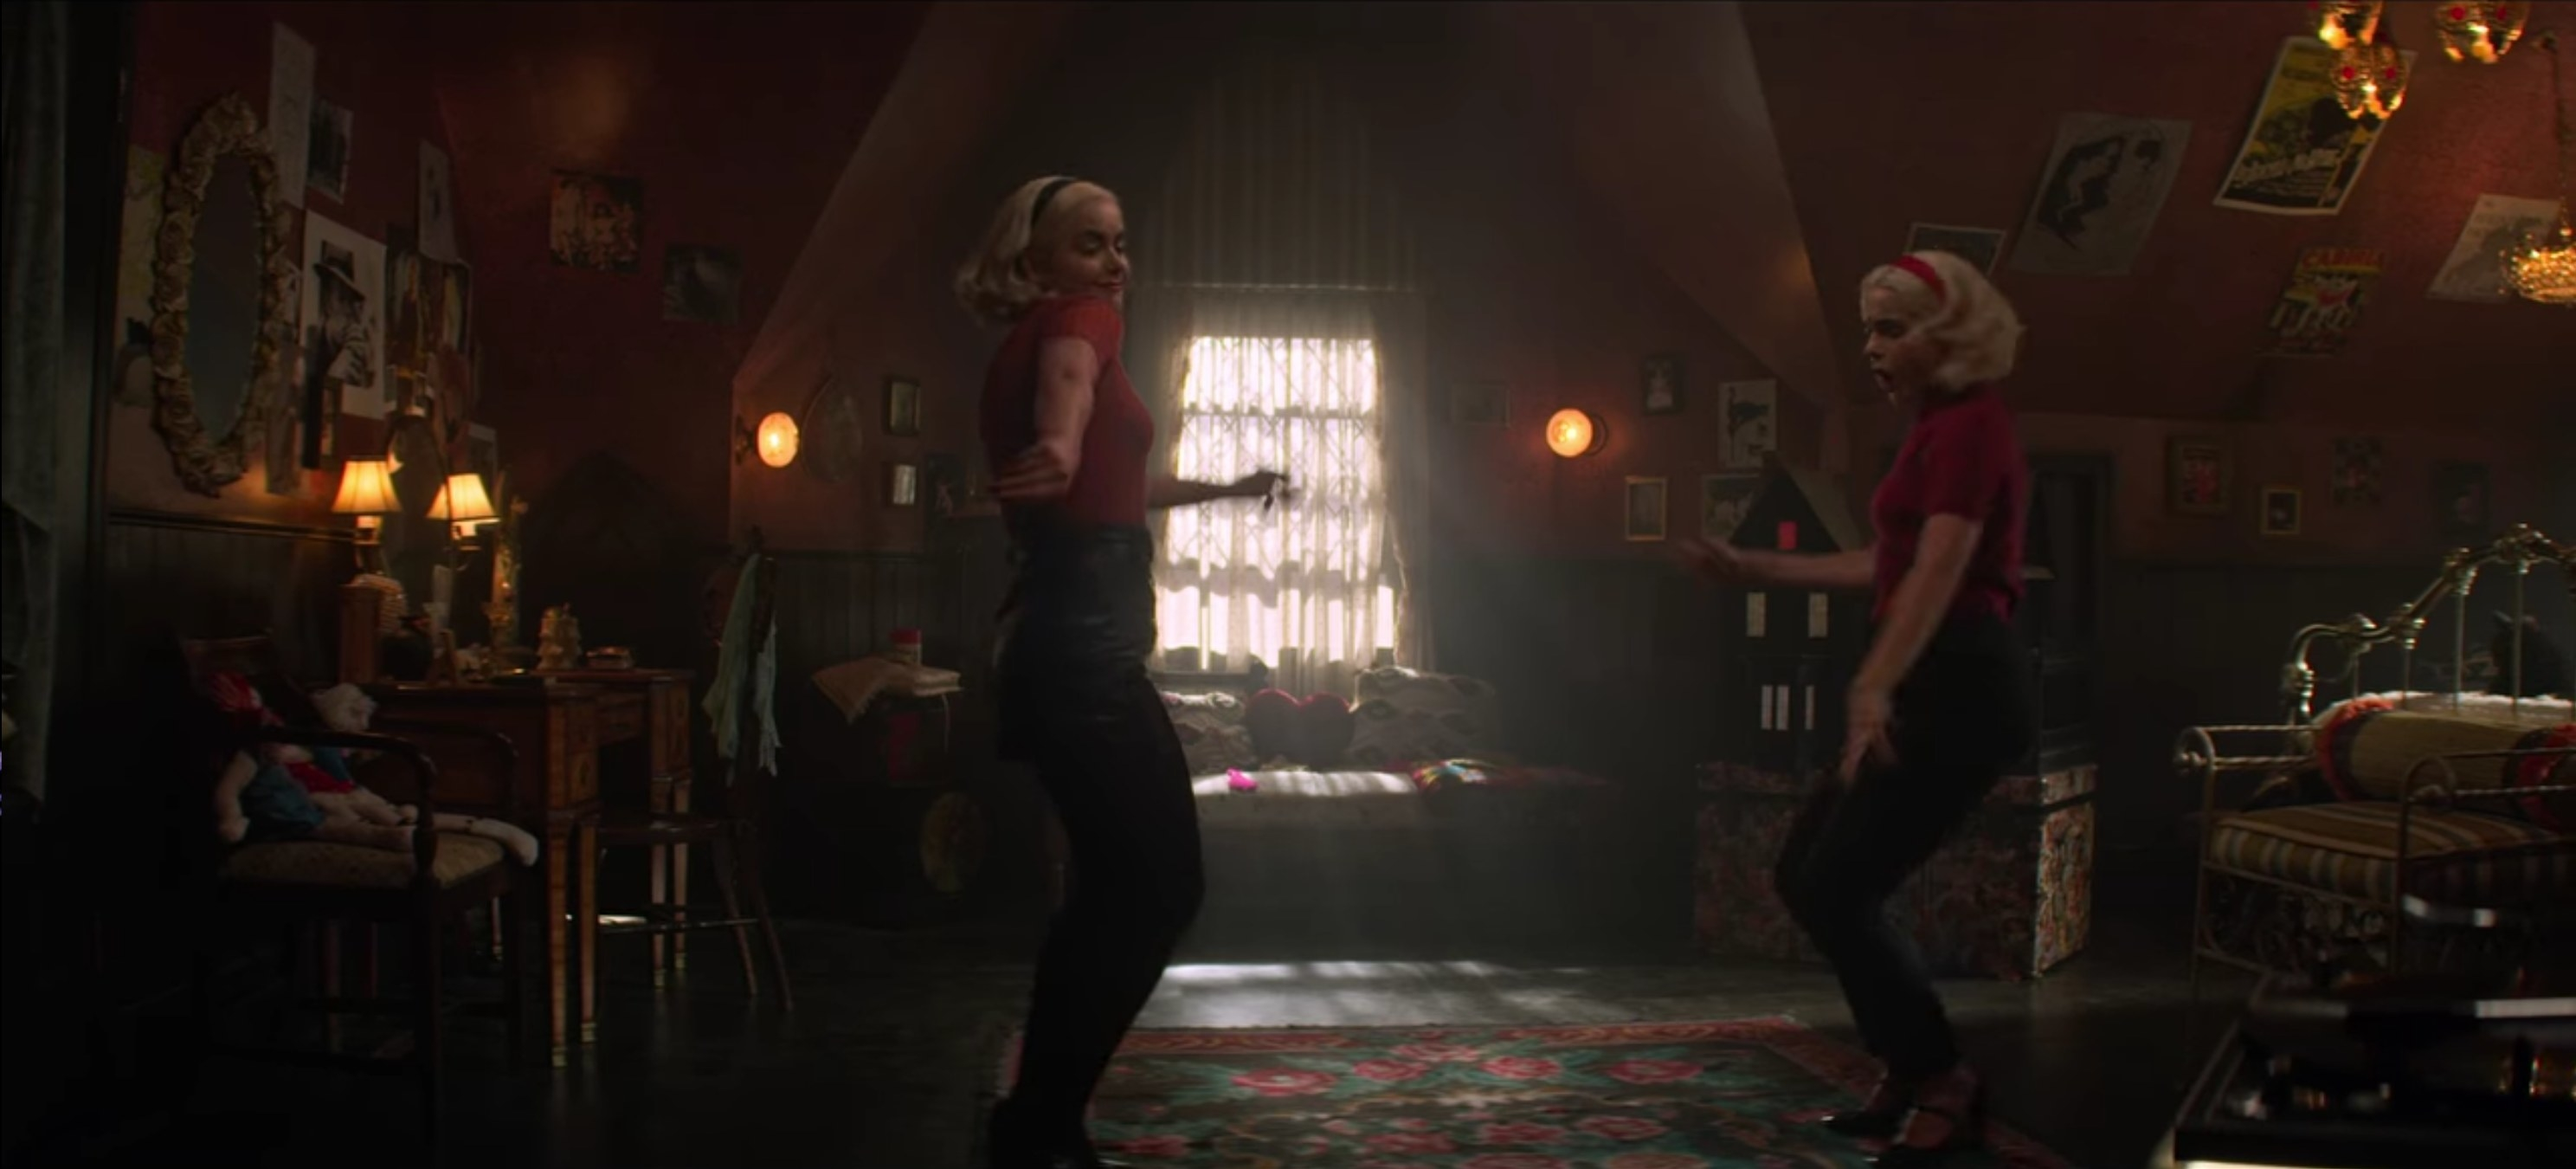 The two Sabrinas having a dance party